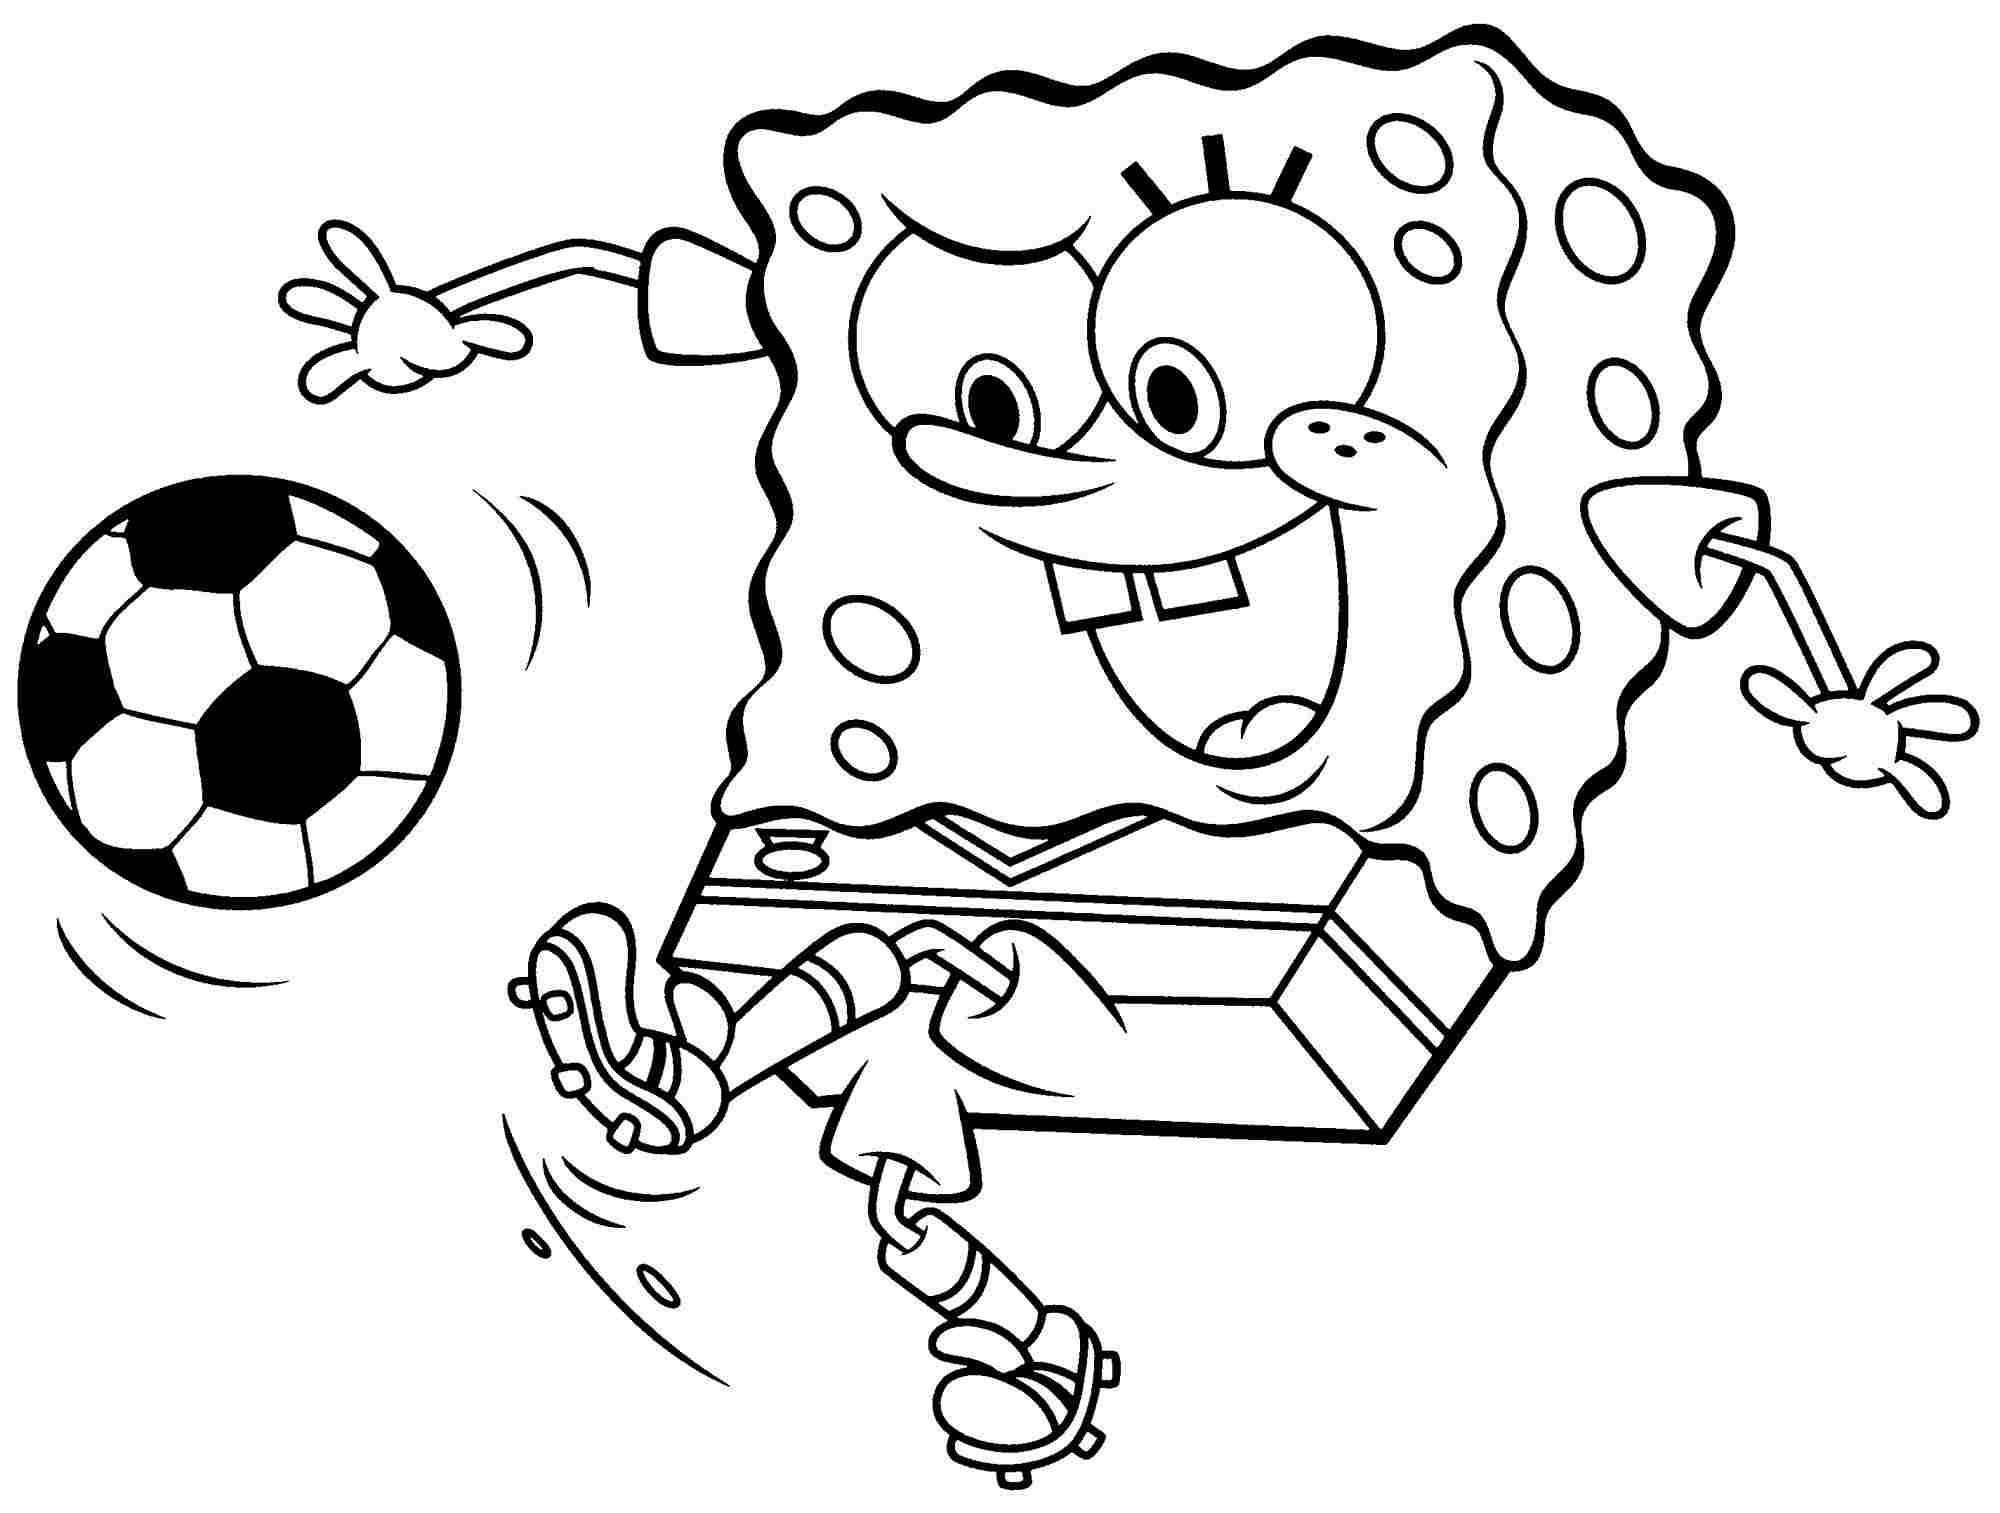 Best SpongeBob SquarePants Memes, Coloring Pages and ...